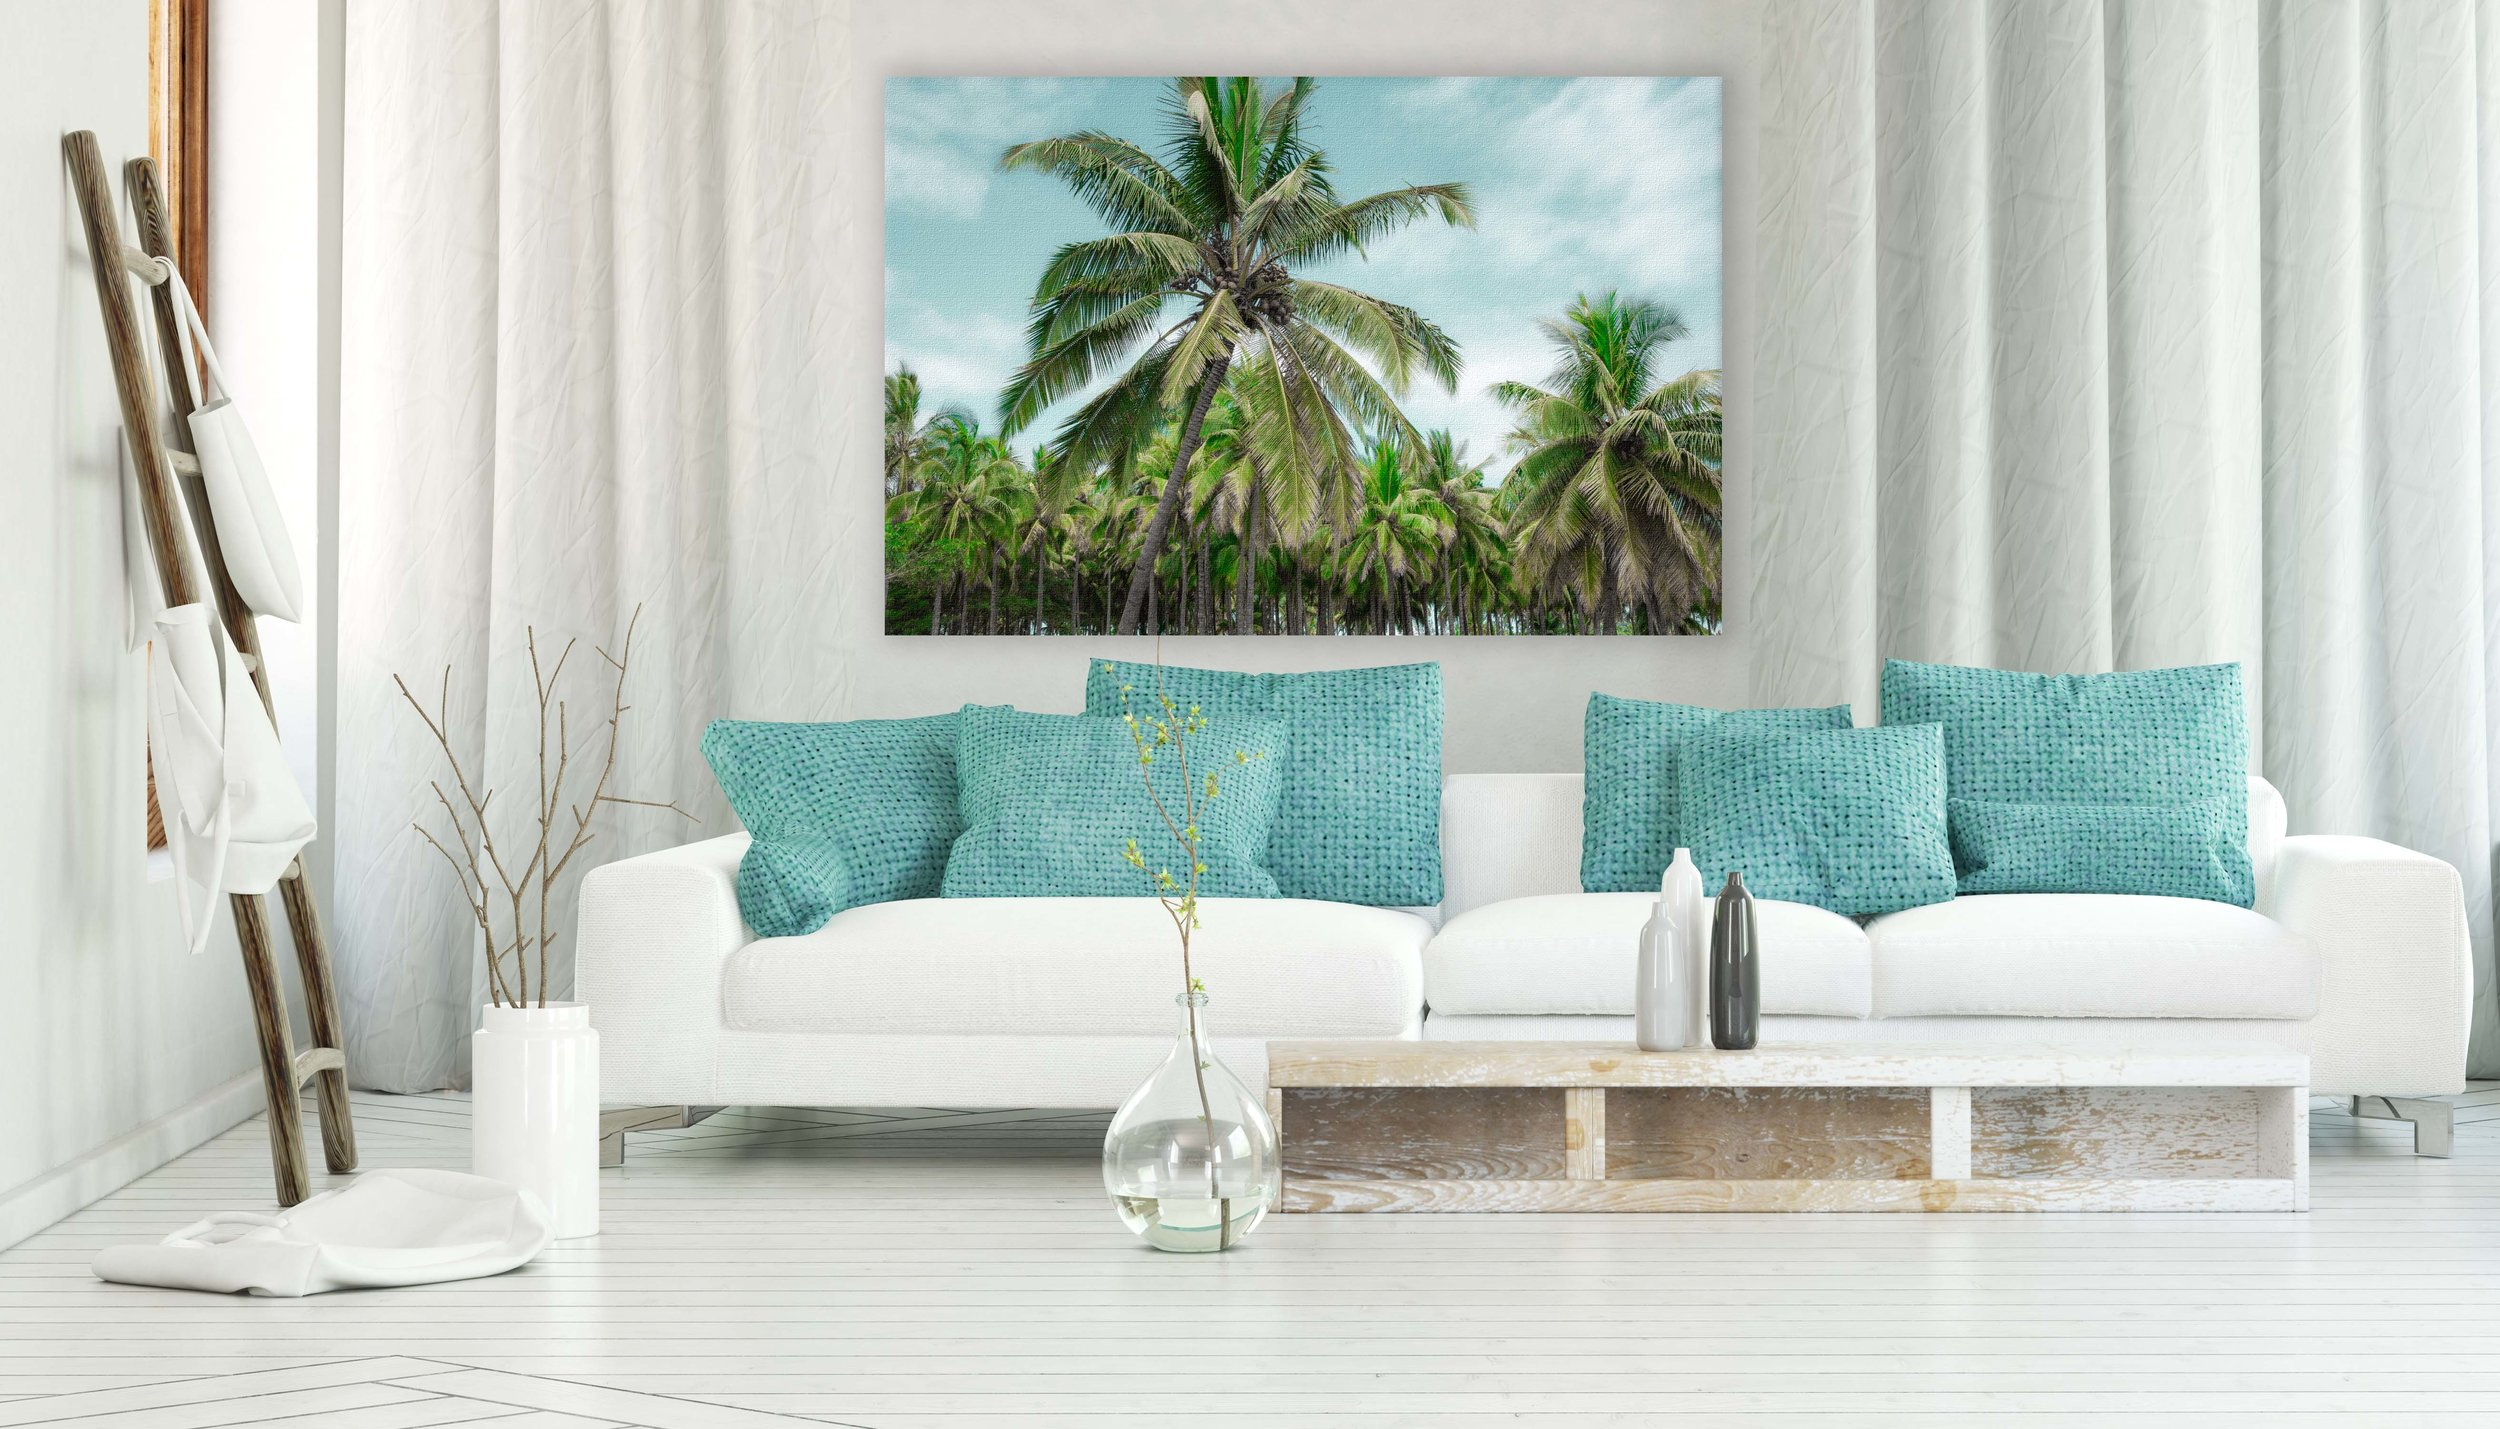 palms carefree white couch teal pillows.jpg